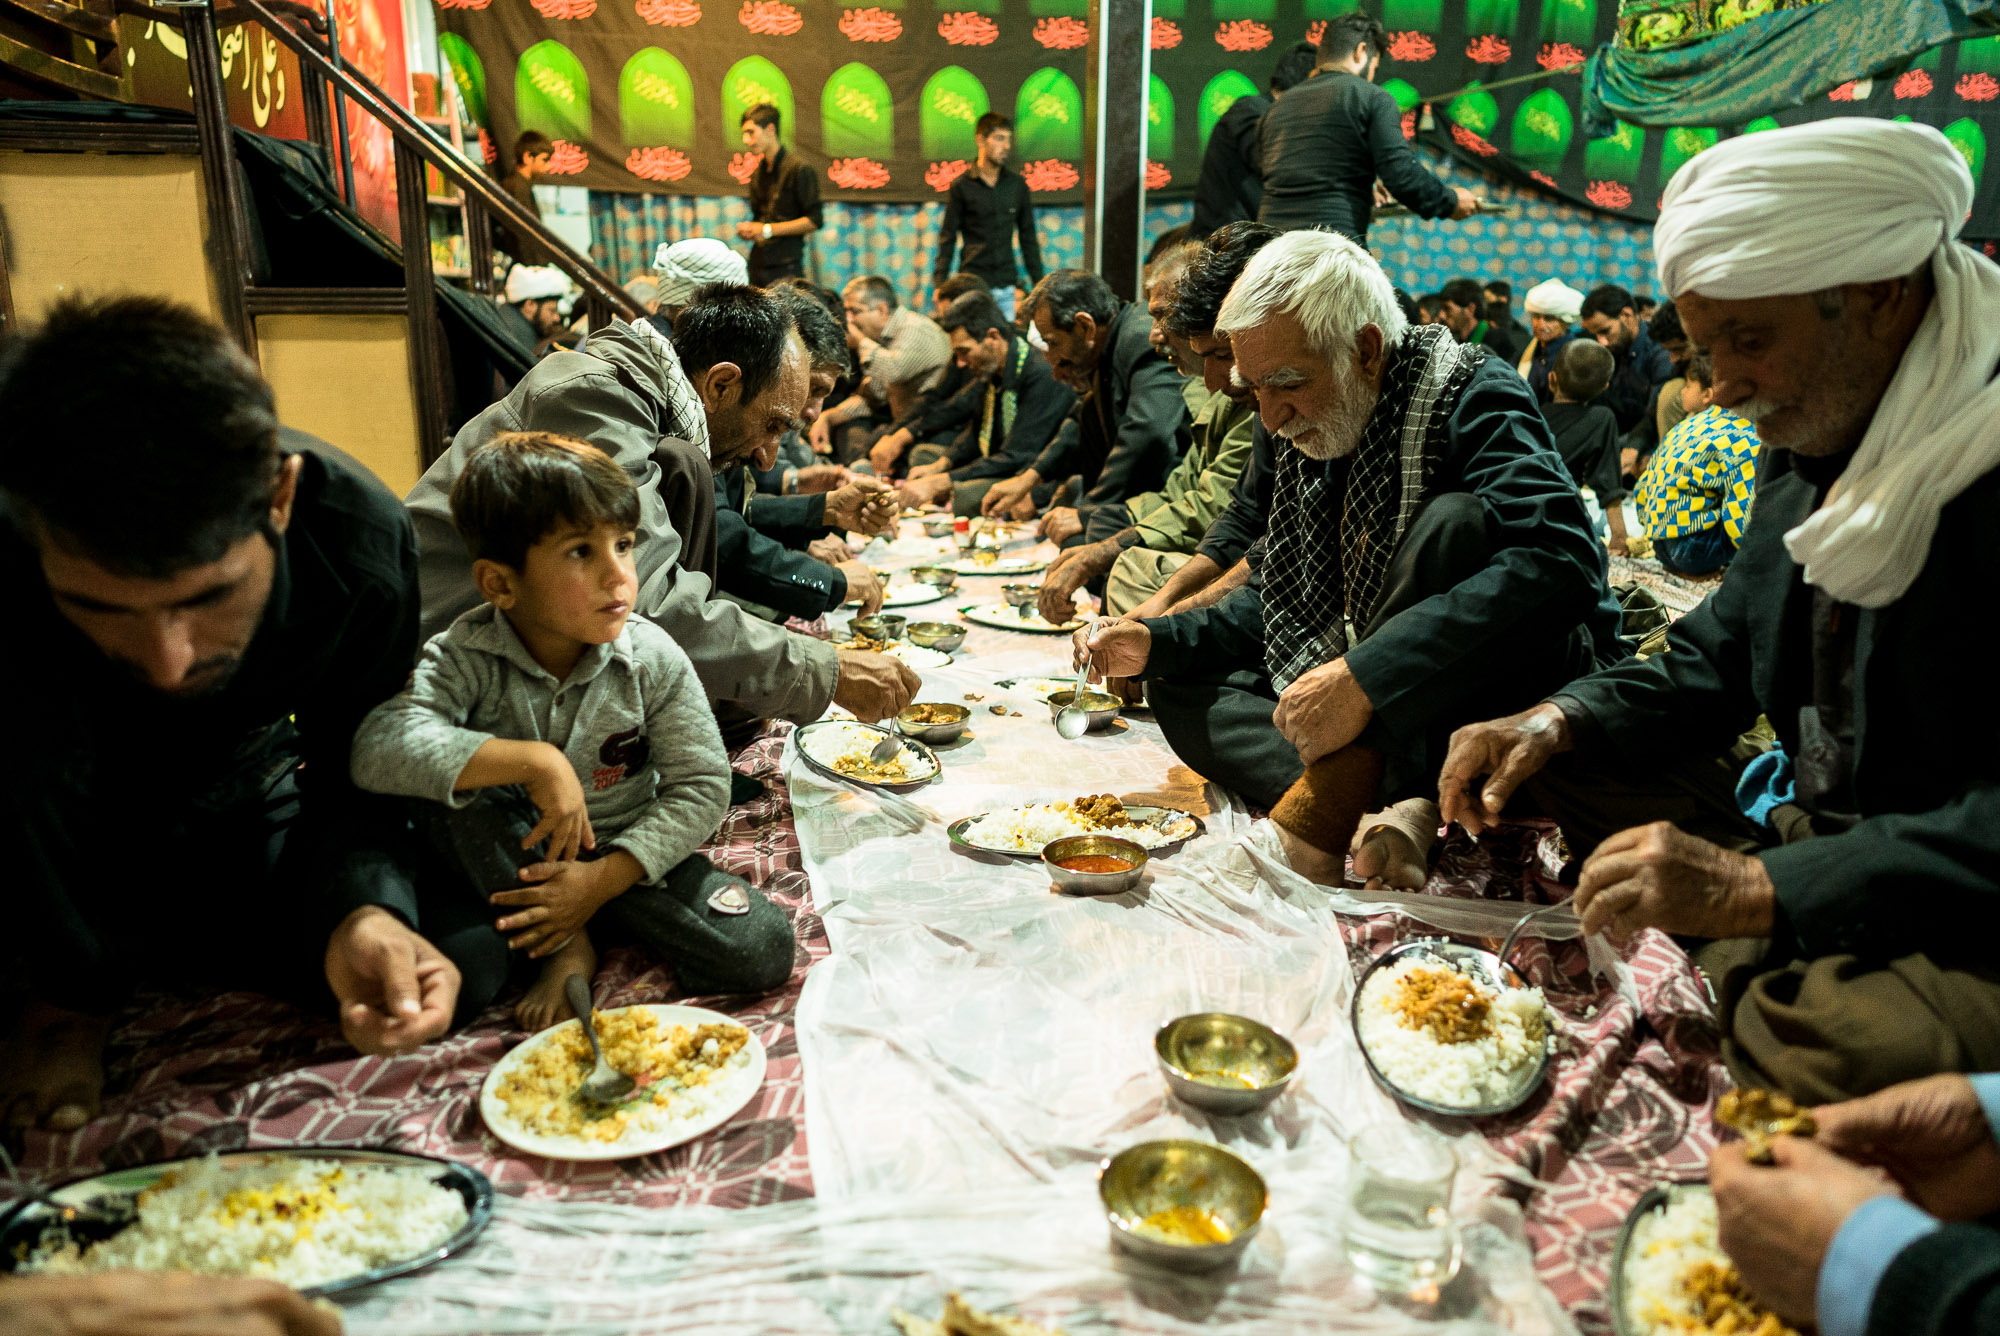 dinner in the mosque of Shurloq